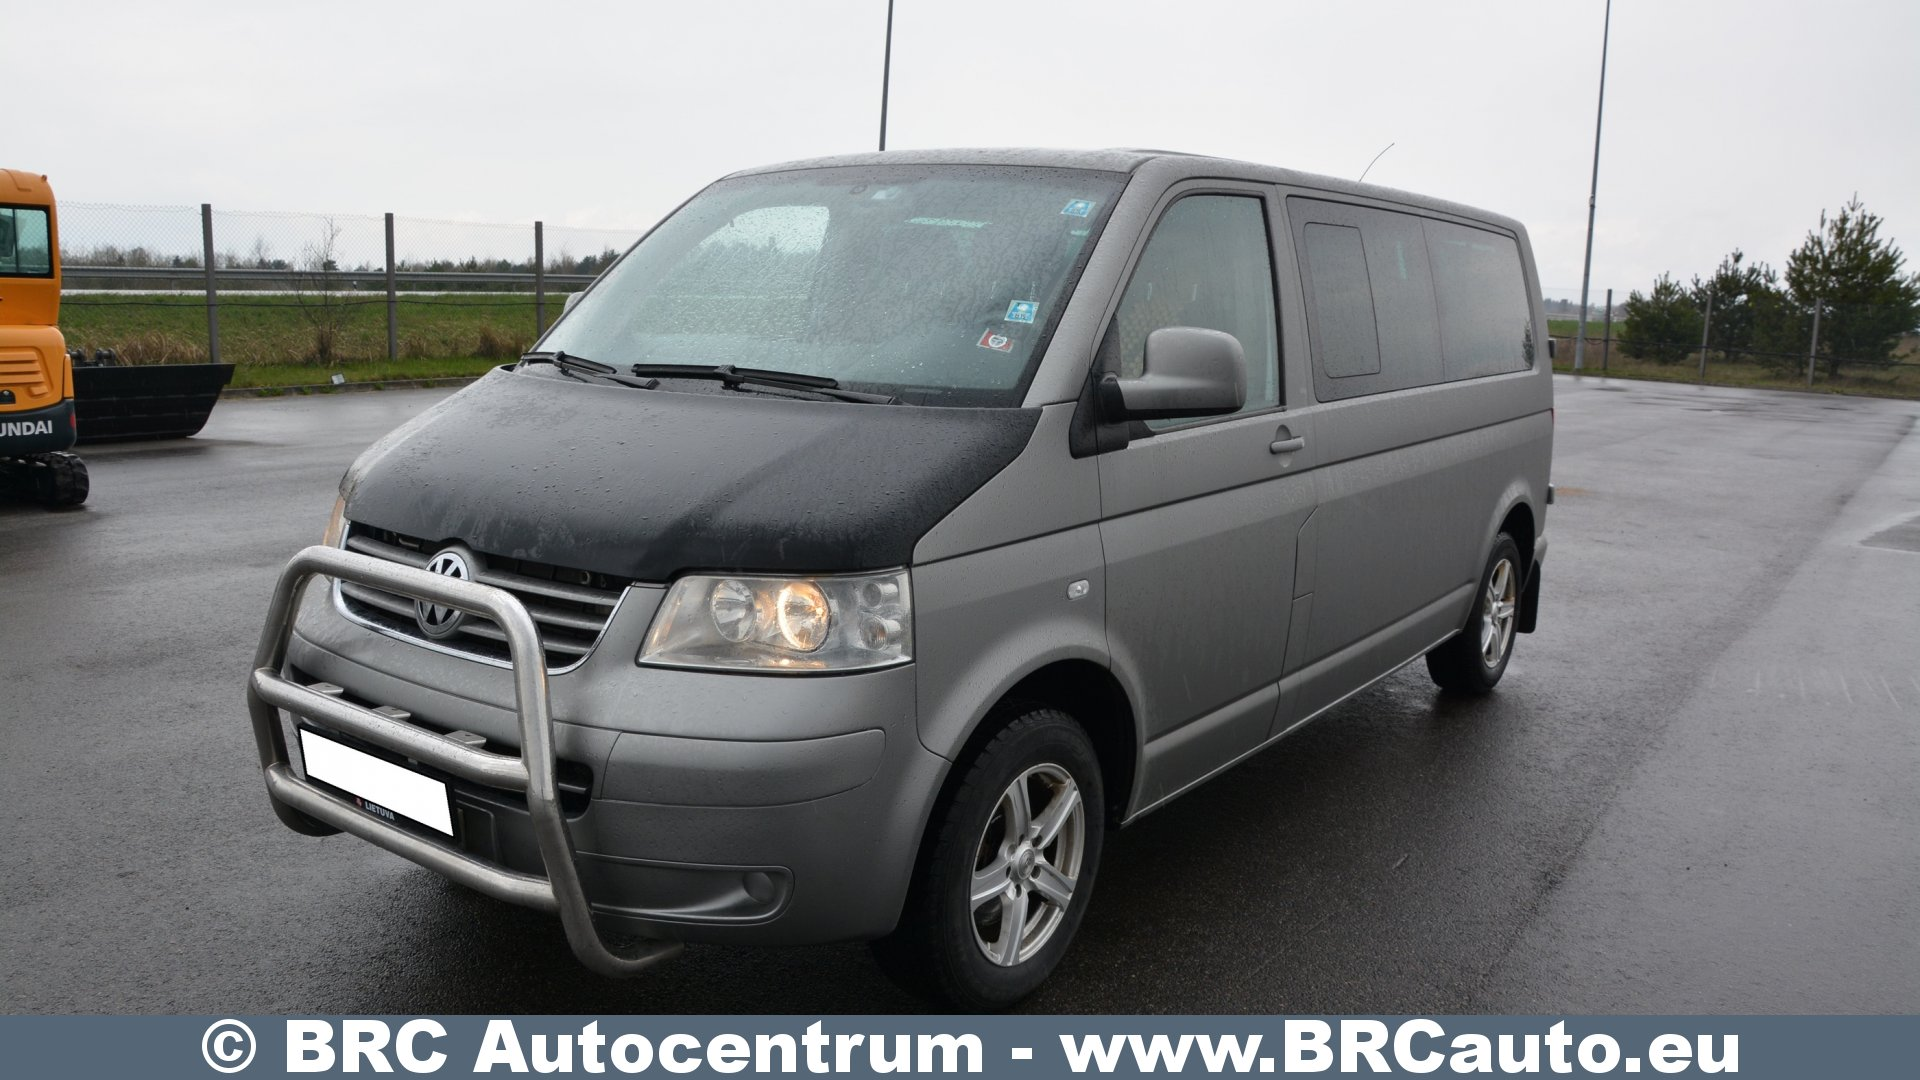 volkswagen caravelle 2 5 tdi t5 long nr 218 brc. Black Bedroom Furniture Sets. Home Design Ideas